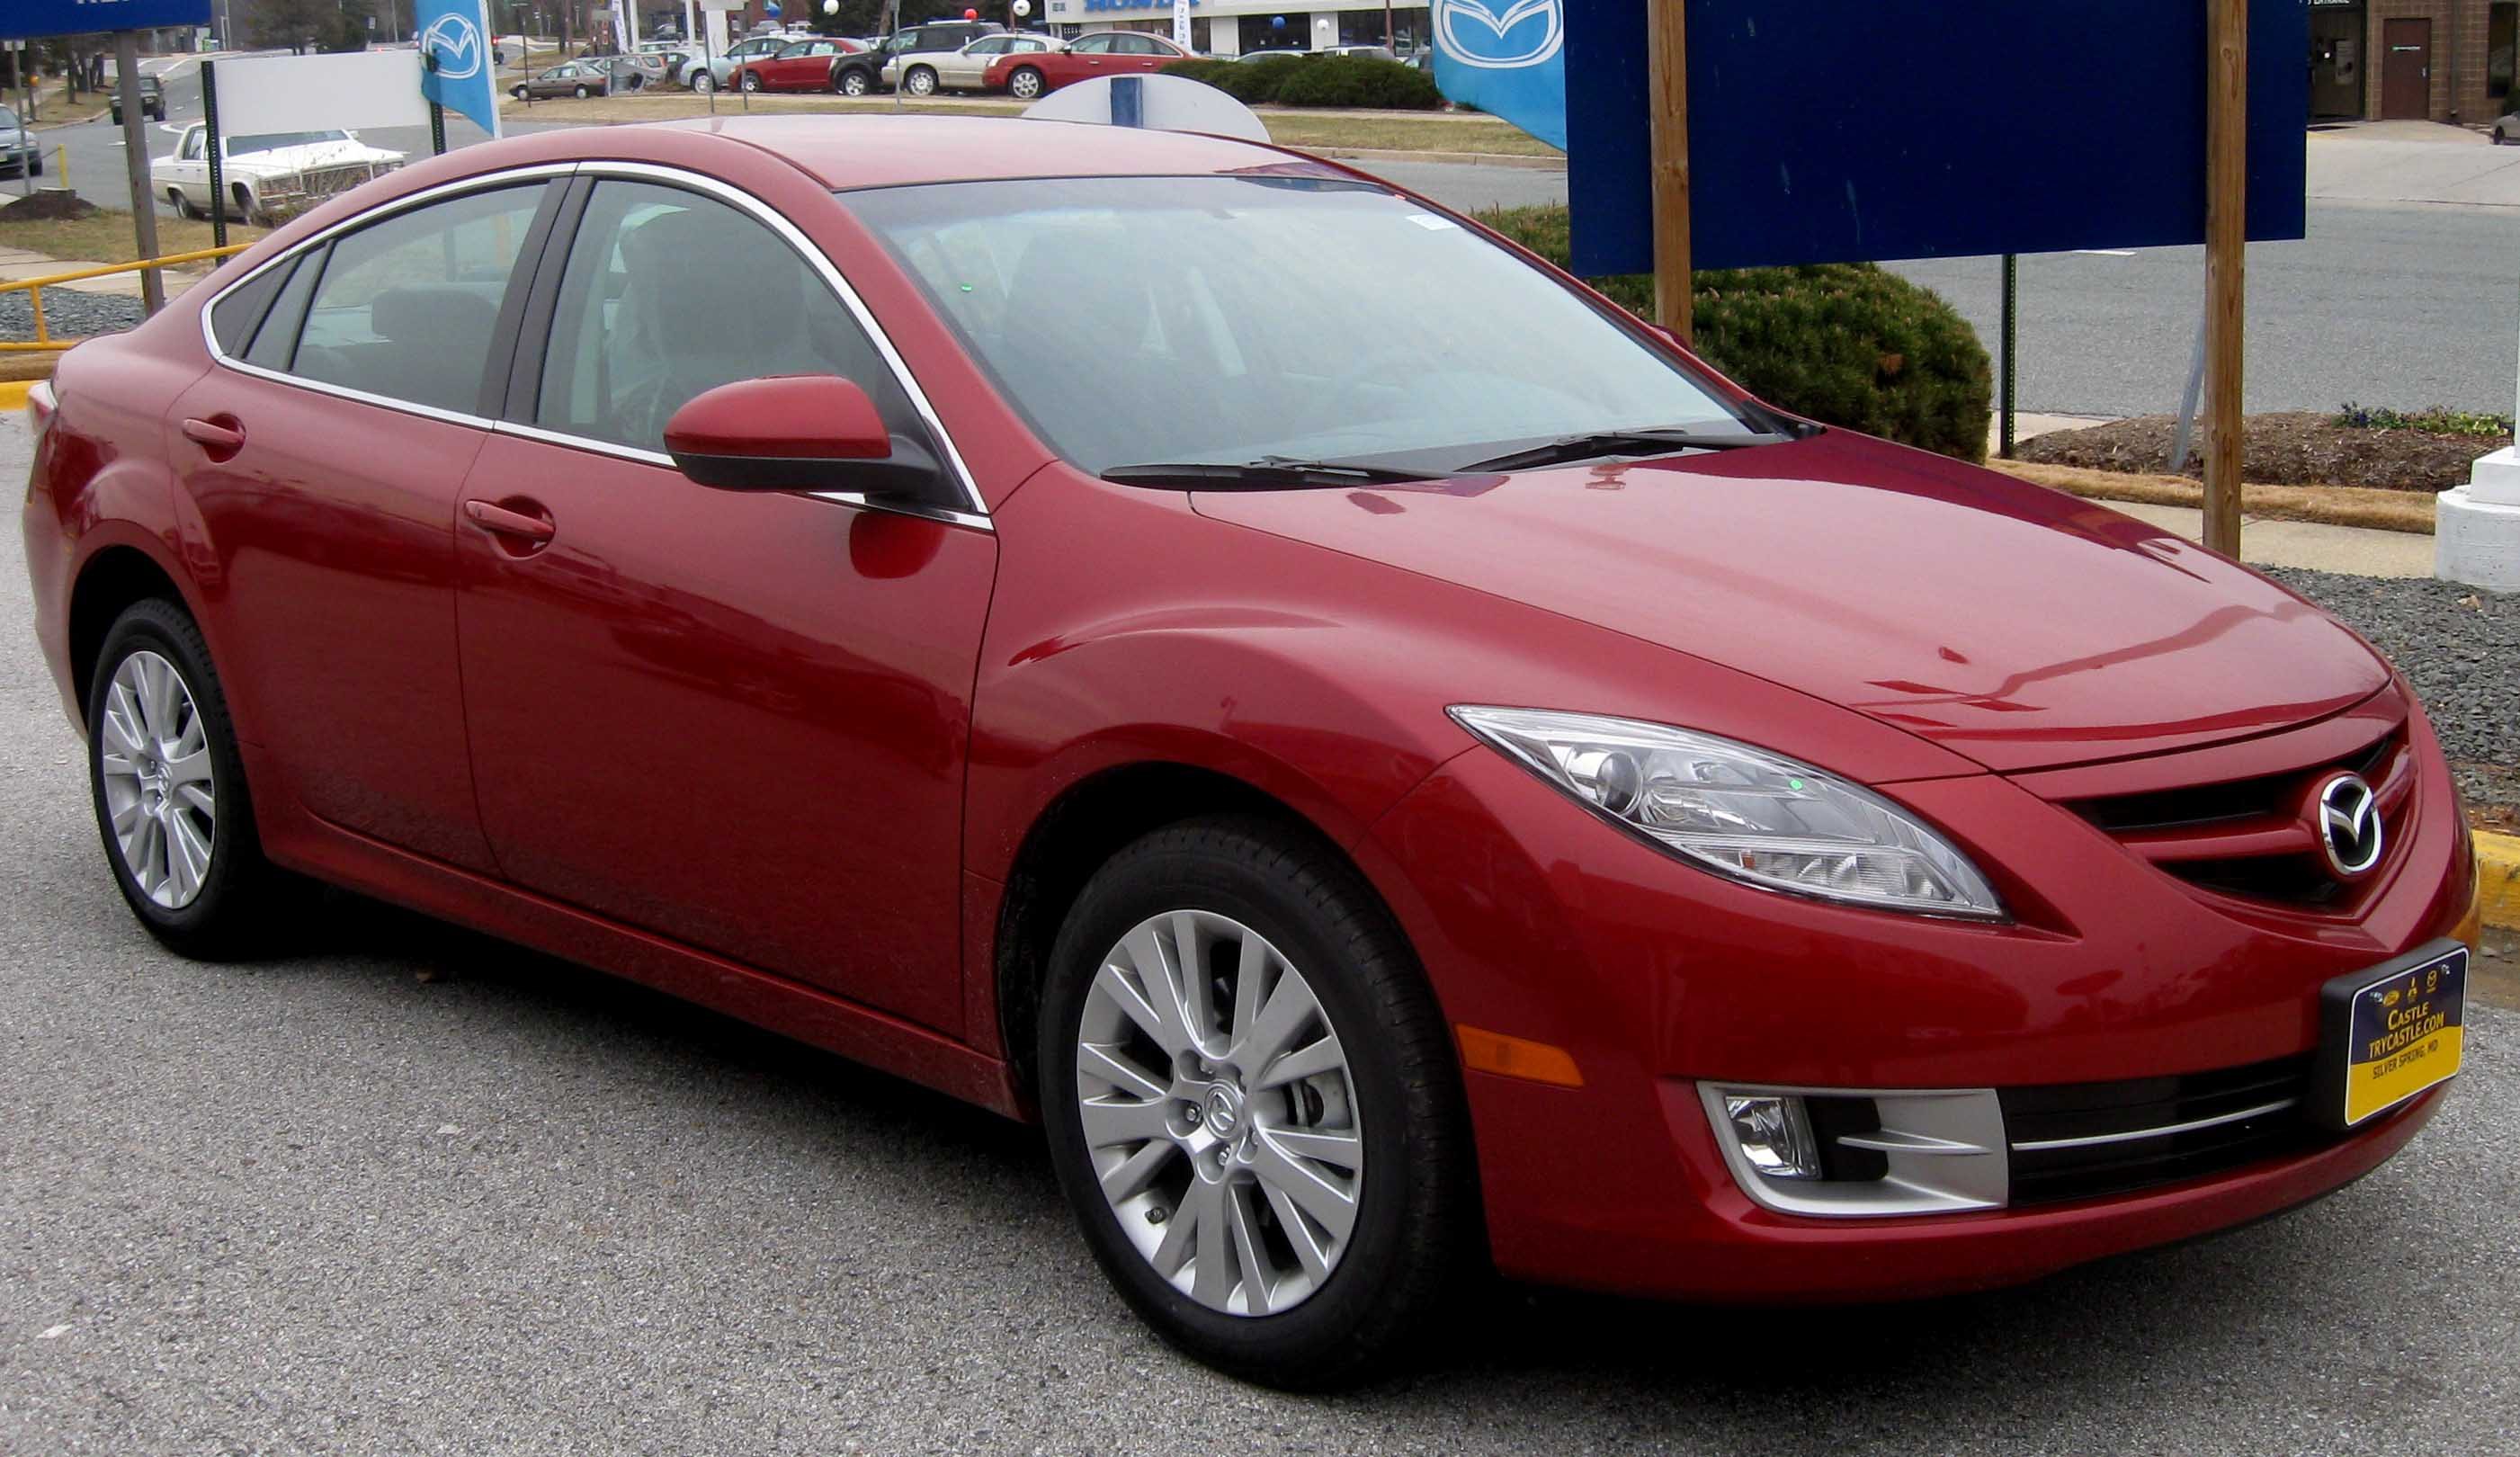 File:2009 Mazda6 i Touring.jpg - Wikimedia Commons